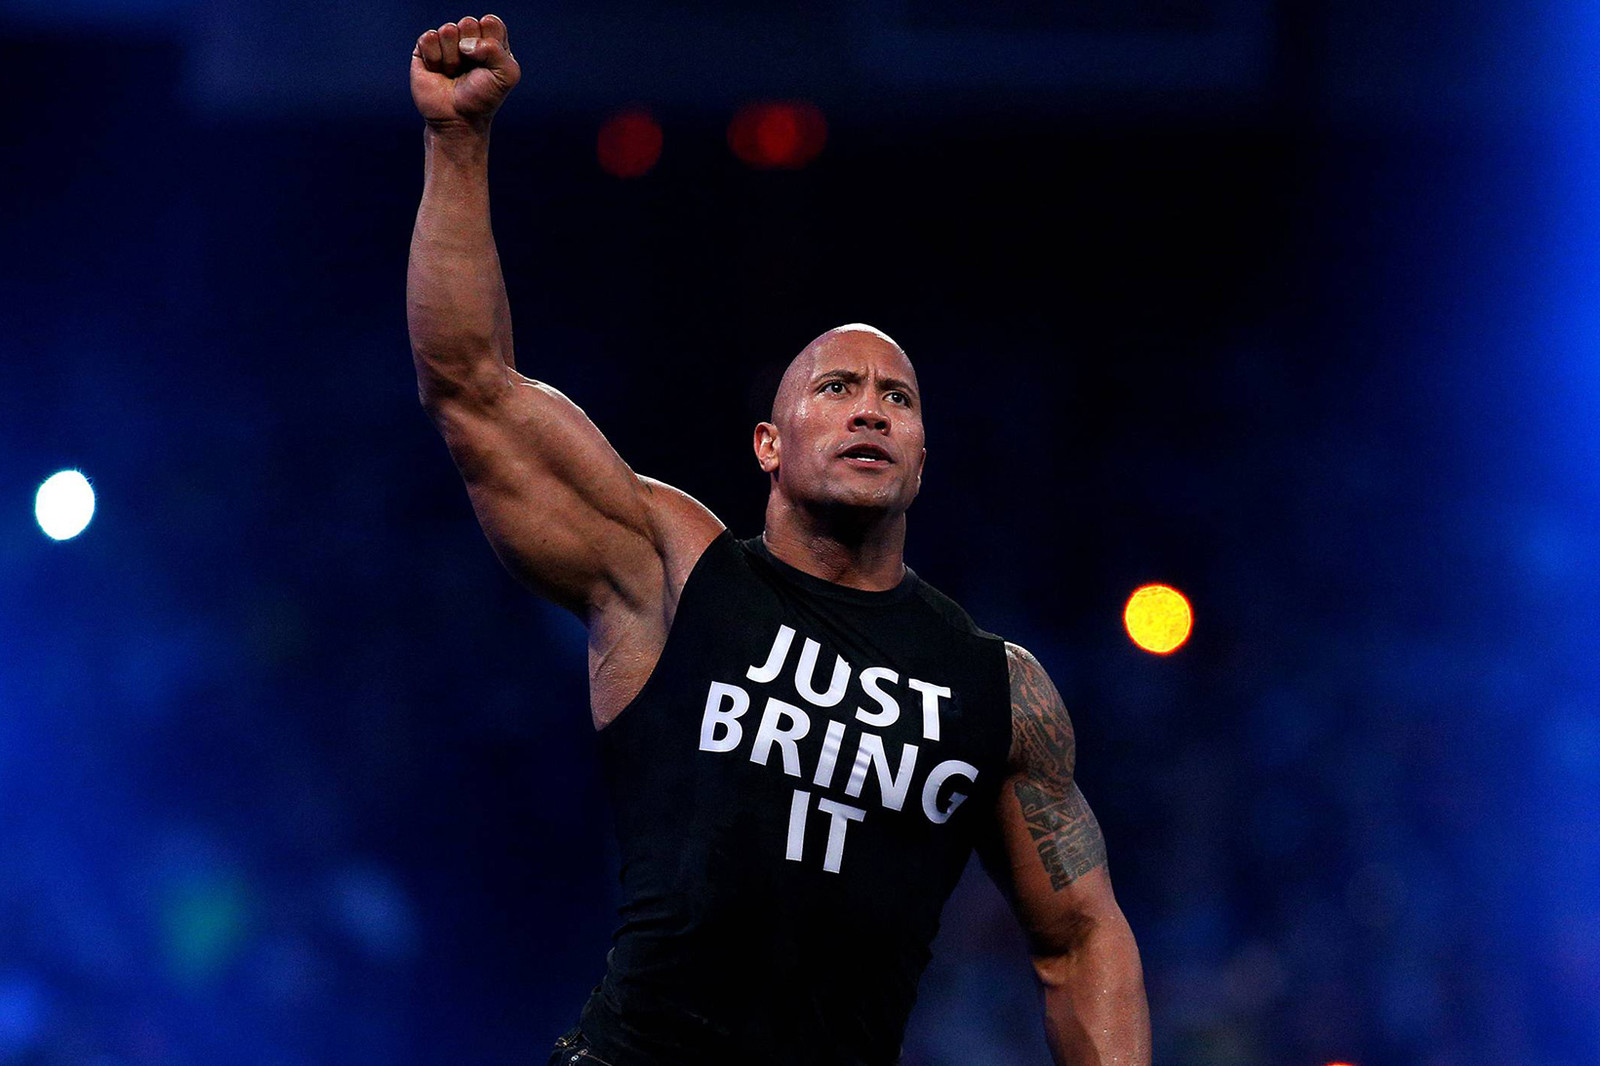 The Rock Follows Arnold Schwarzenegger Legacy | HYPEBEAST